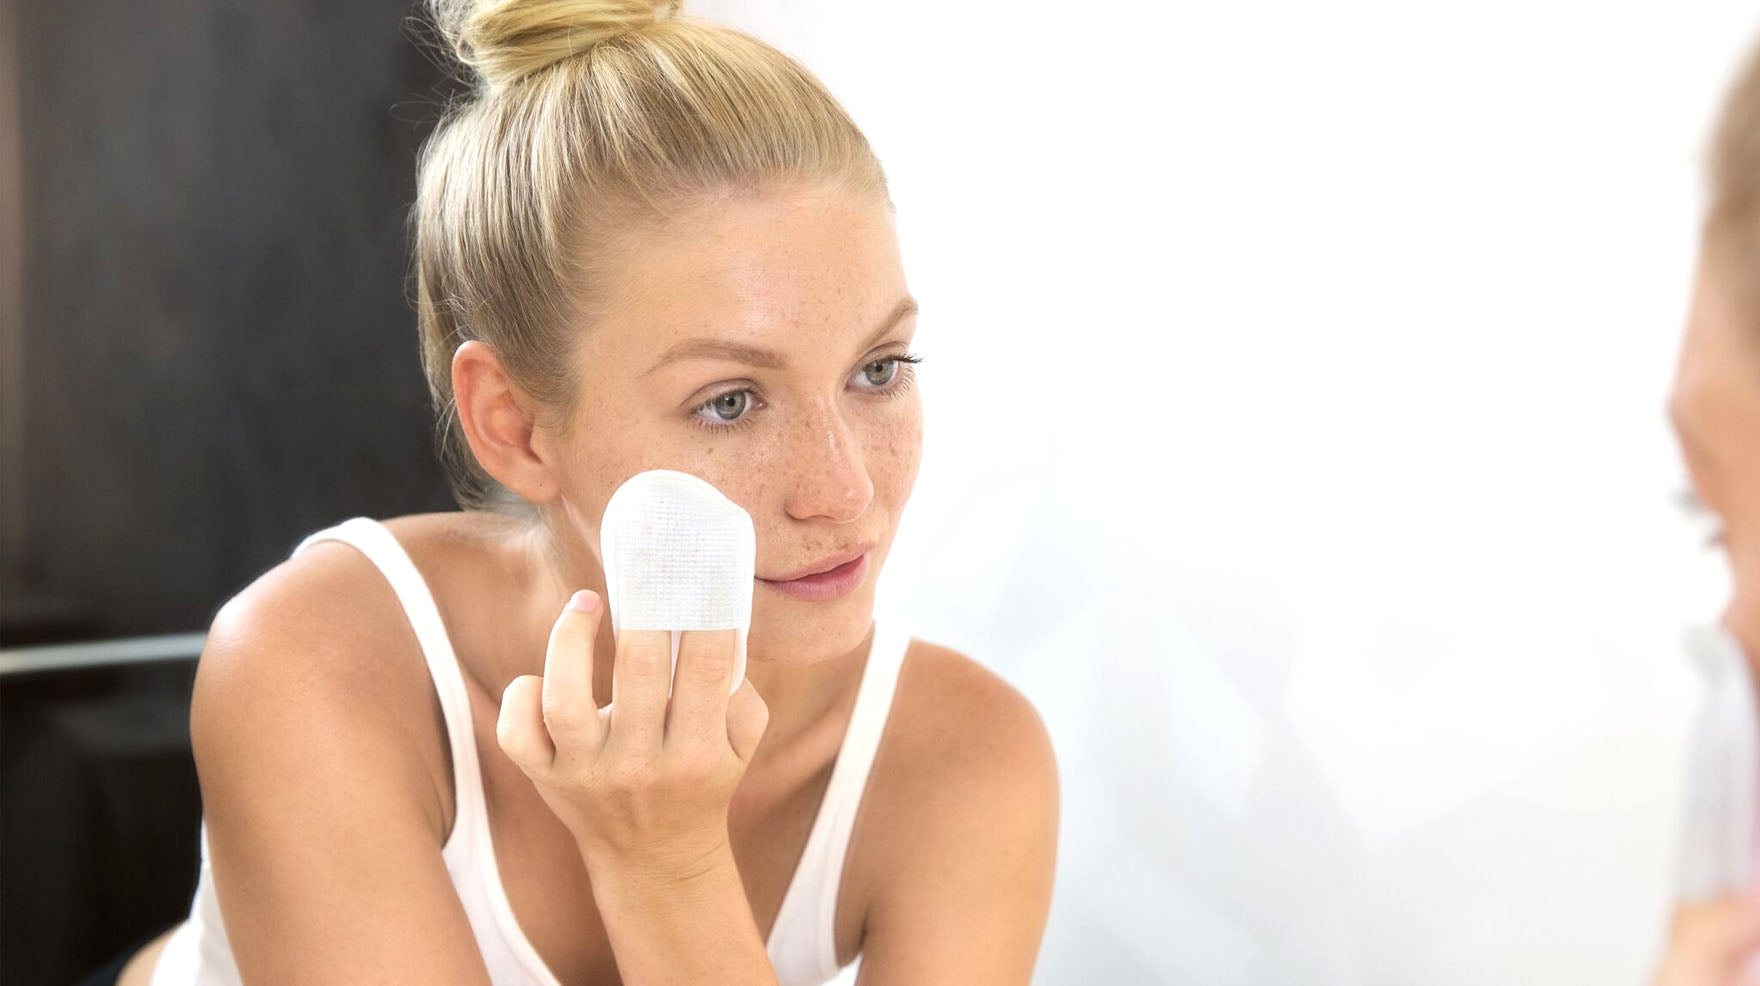 Dual Phase Skin Reviving Treatment Pads Benefits